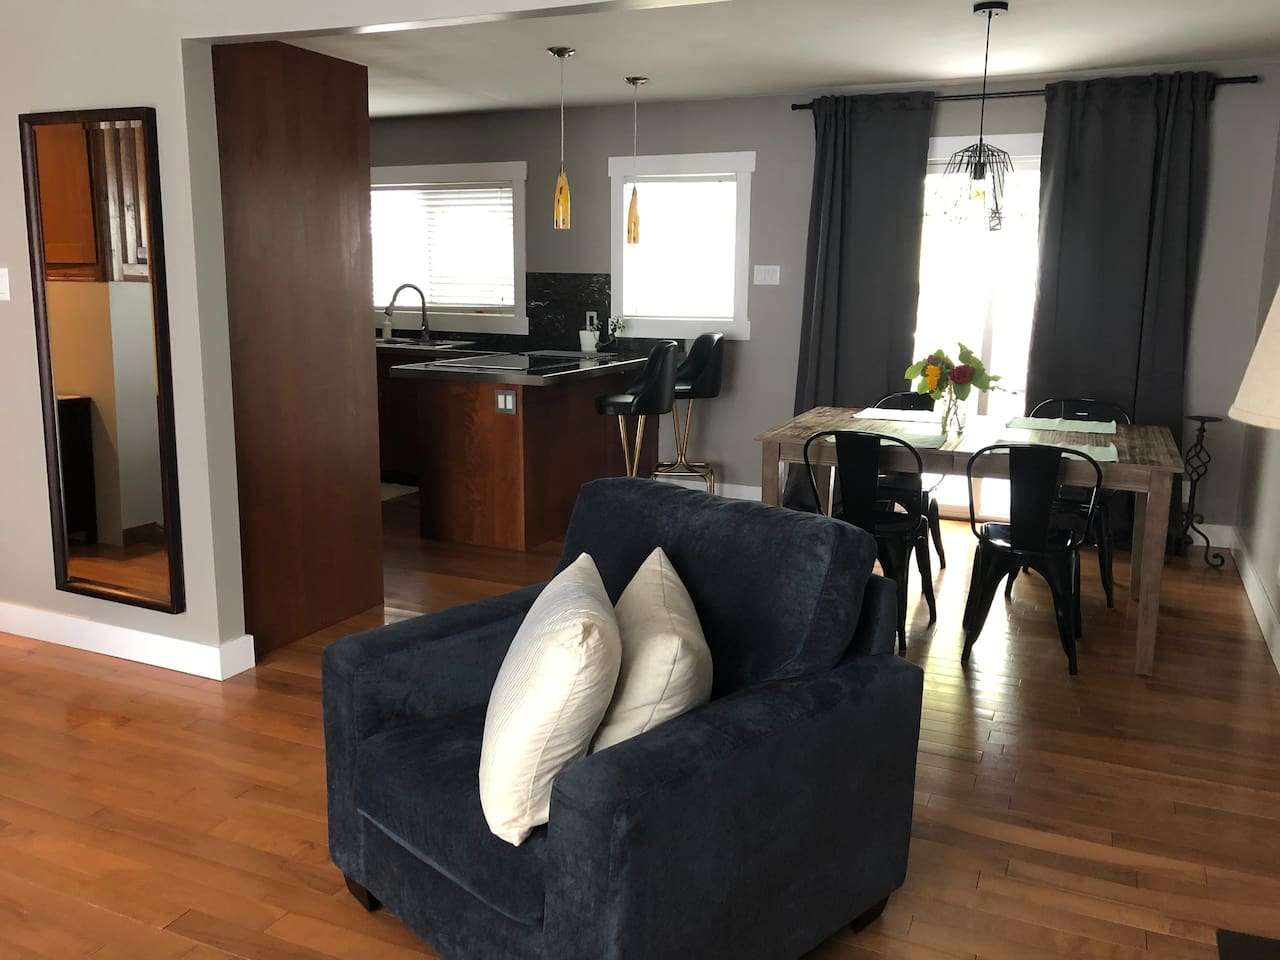 Open concept kitchen/ dining / living space. Modern furniture and updated appliances in the kitchen.